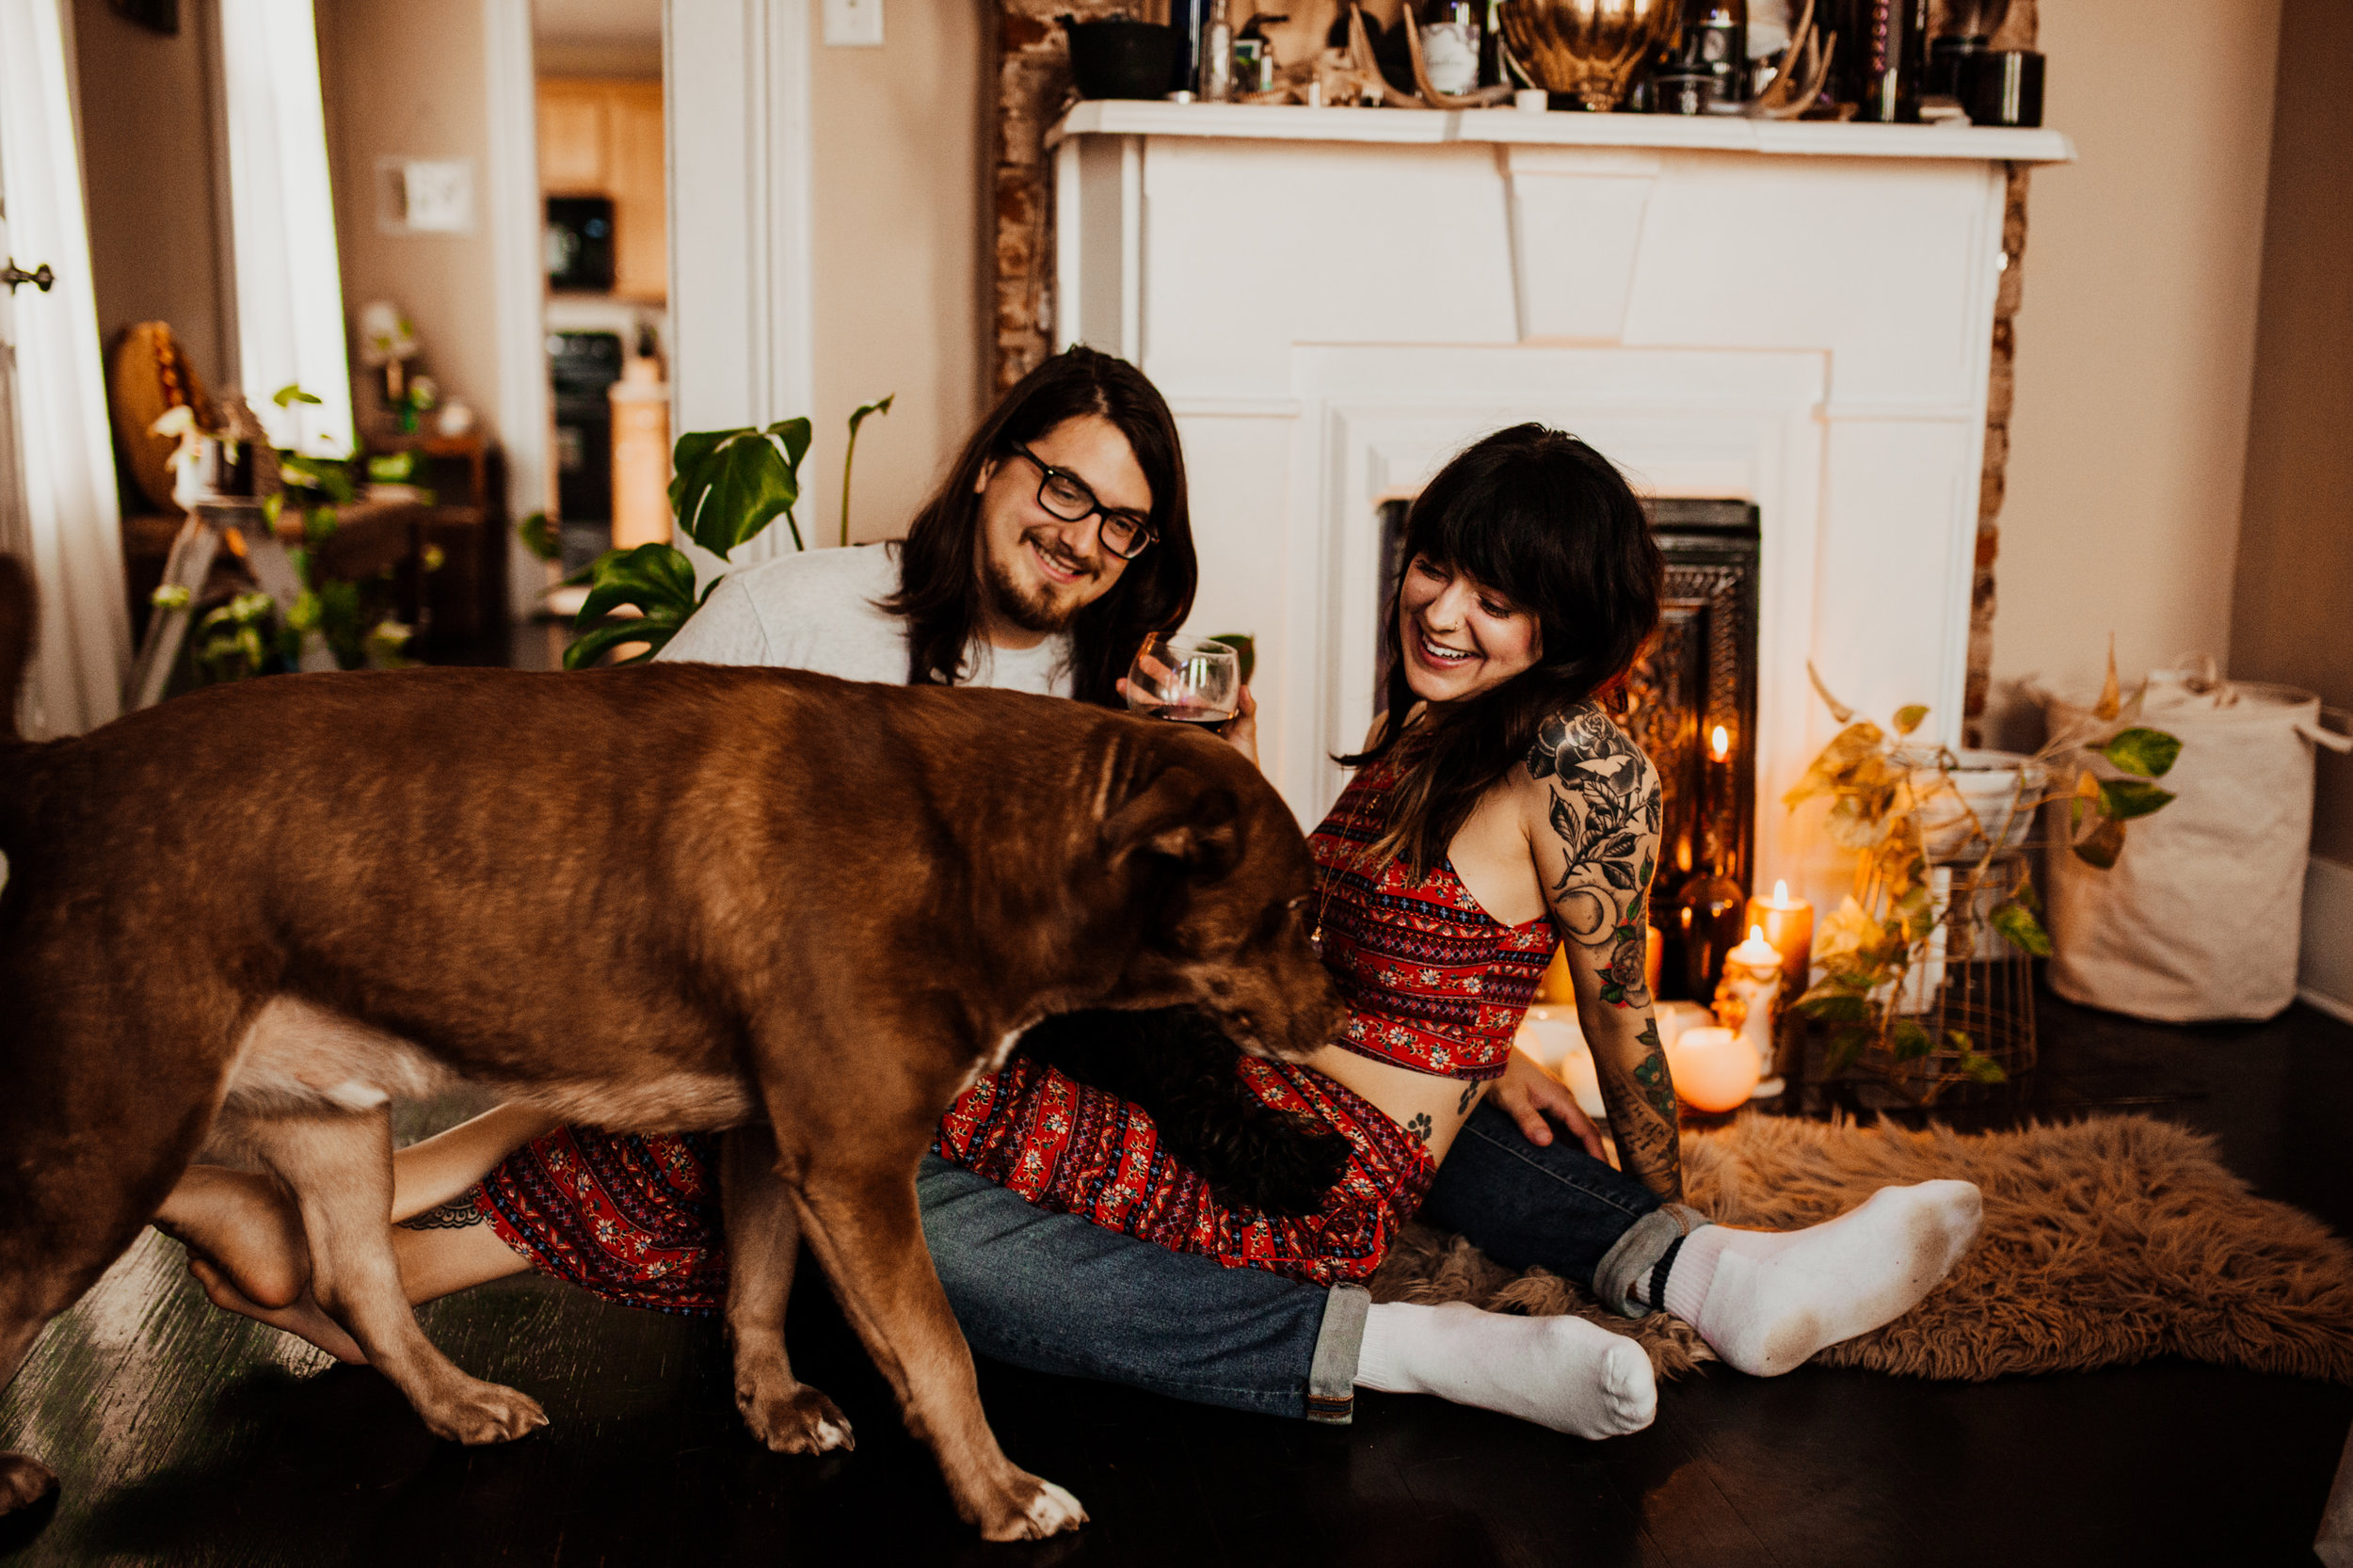 louisville-photographer-engagement-photos-in-home-session-kentucky (43 of 73).jpg